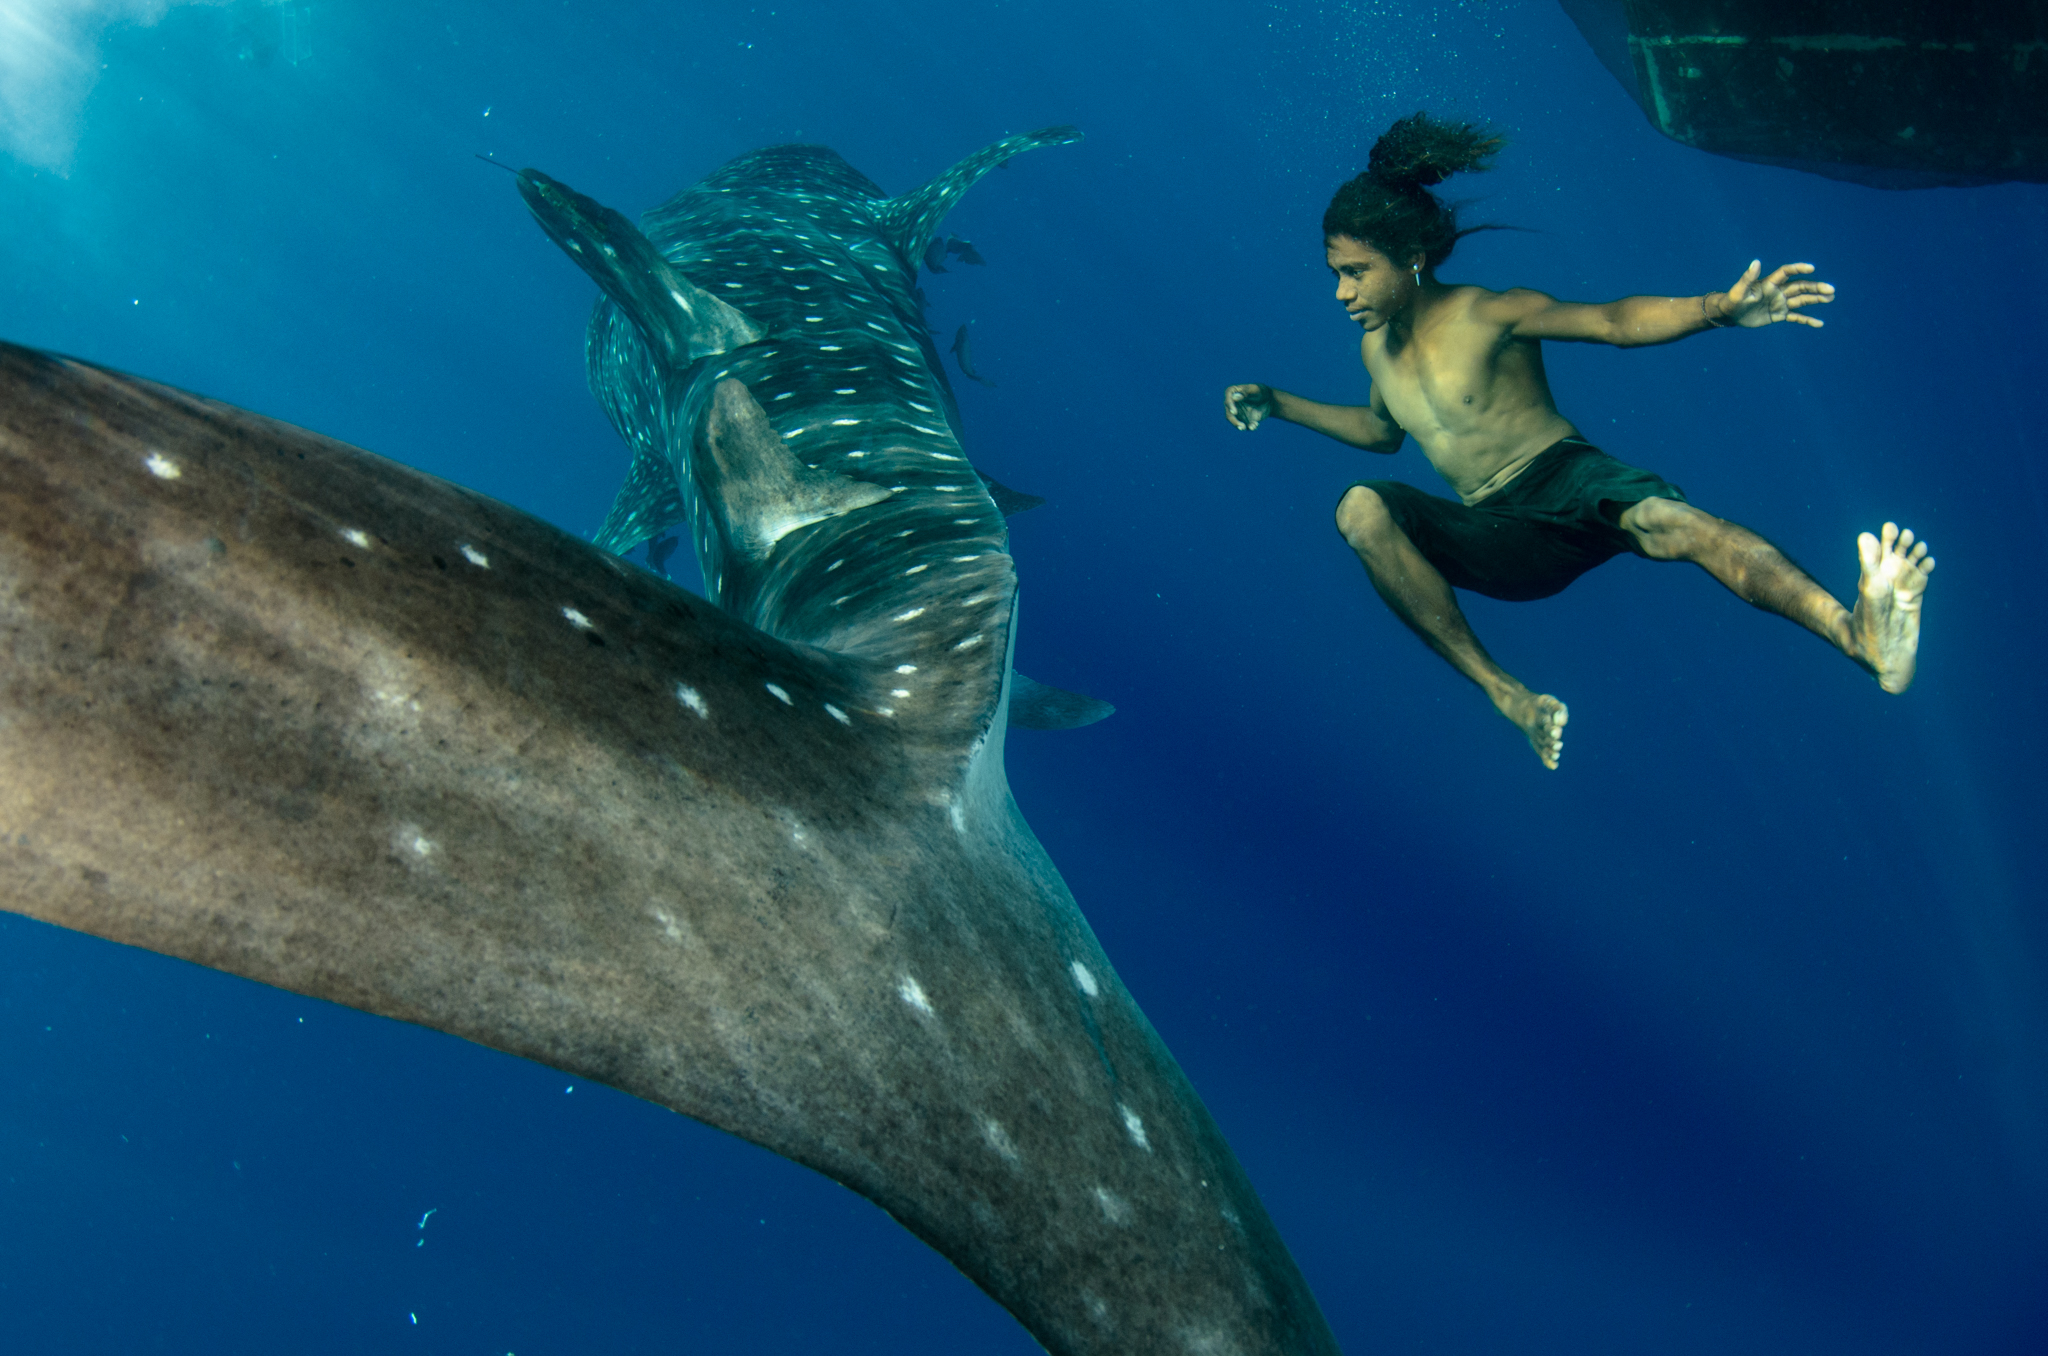 A young fisherman, without mask, snorkel, or flippers jumps in with a whale shark as the behemoth passes by his bagan.